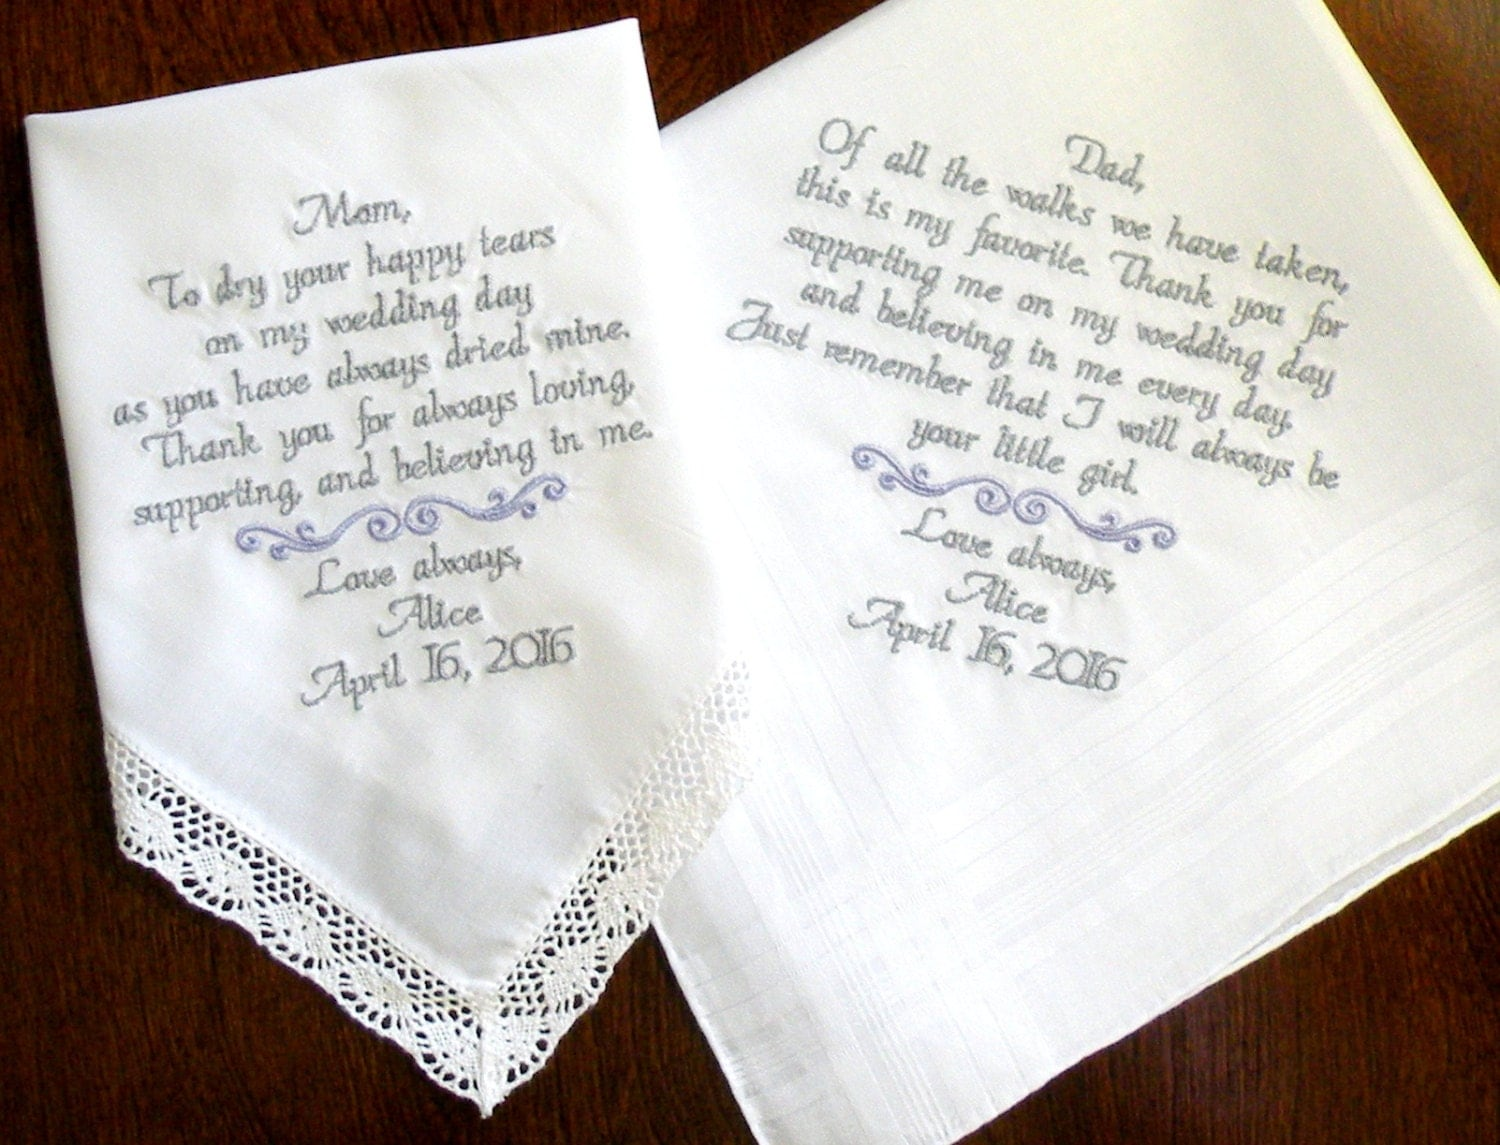 Gifts On Wedding Day For Bride: Wedding Day Thank You Wedding Favor Gifts Mother & Father